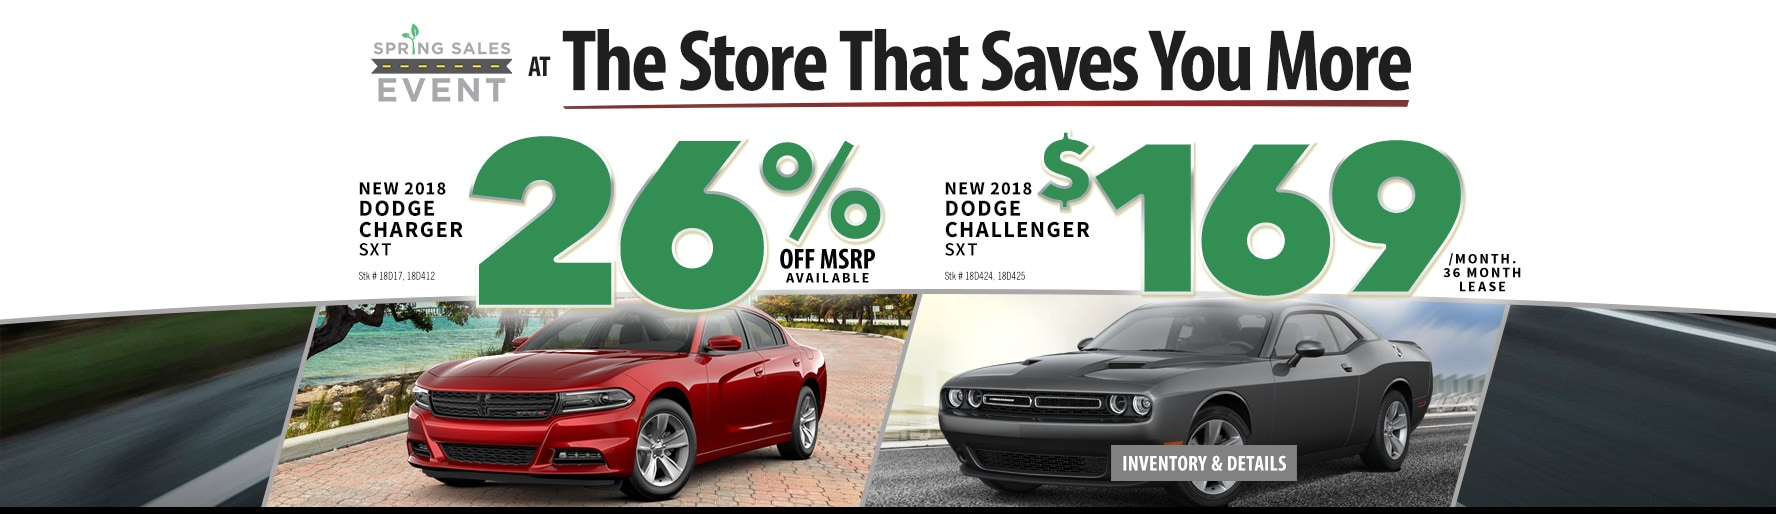 Tampa Chevrolet Service Coupons >> Ferman Chrysler Jeep Dodge Ram of New Port Richey   New Car Dealer   Greater Tampa Used Cars for ...